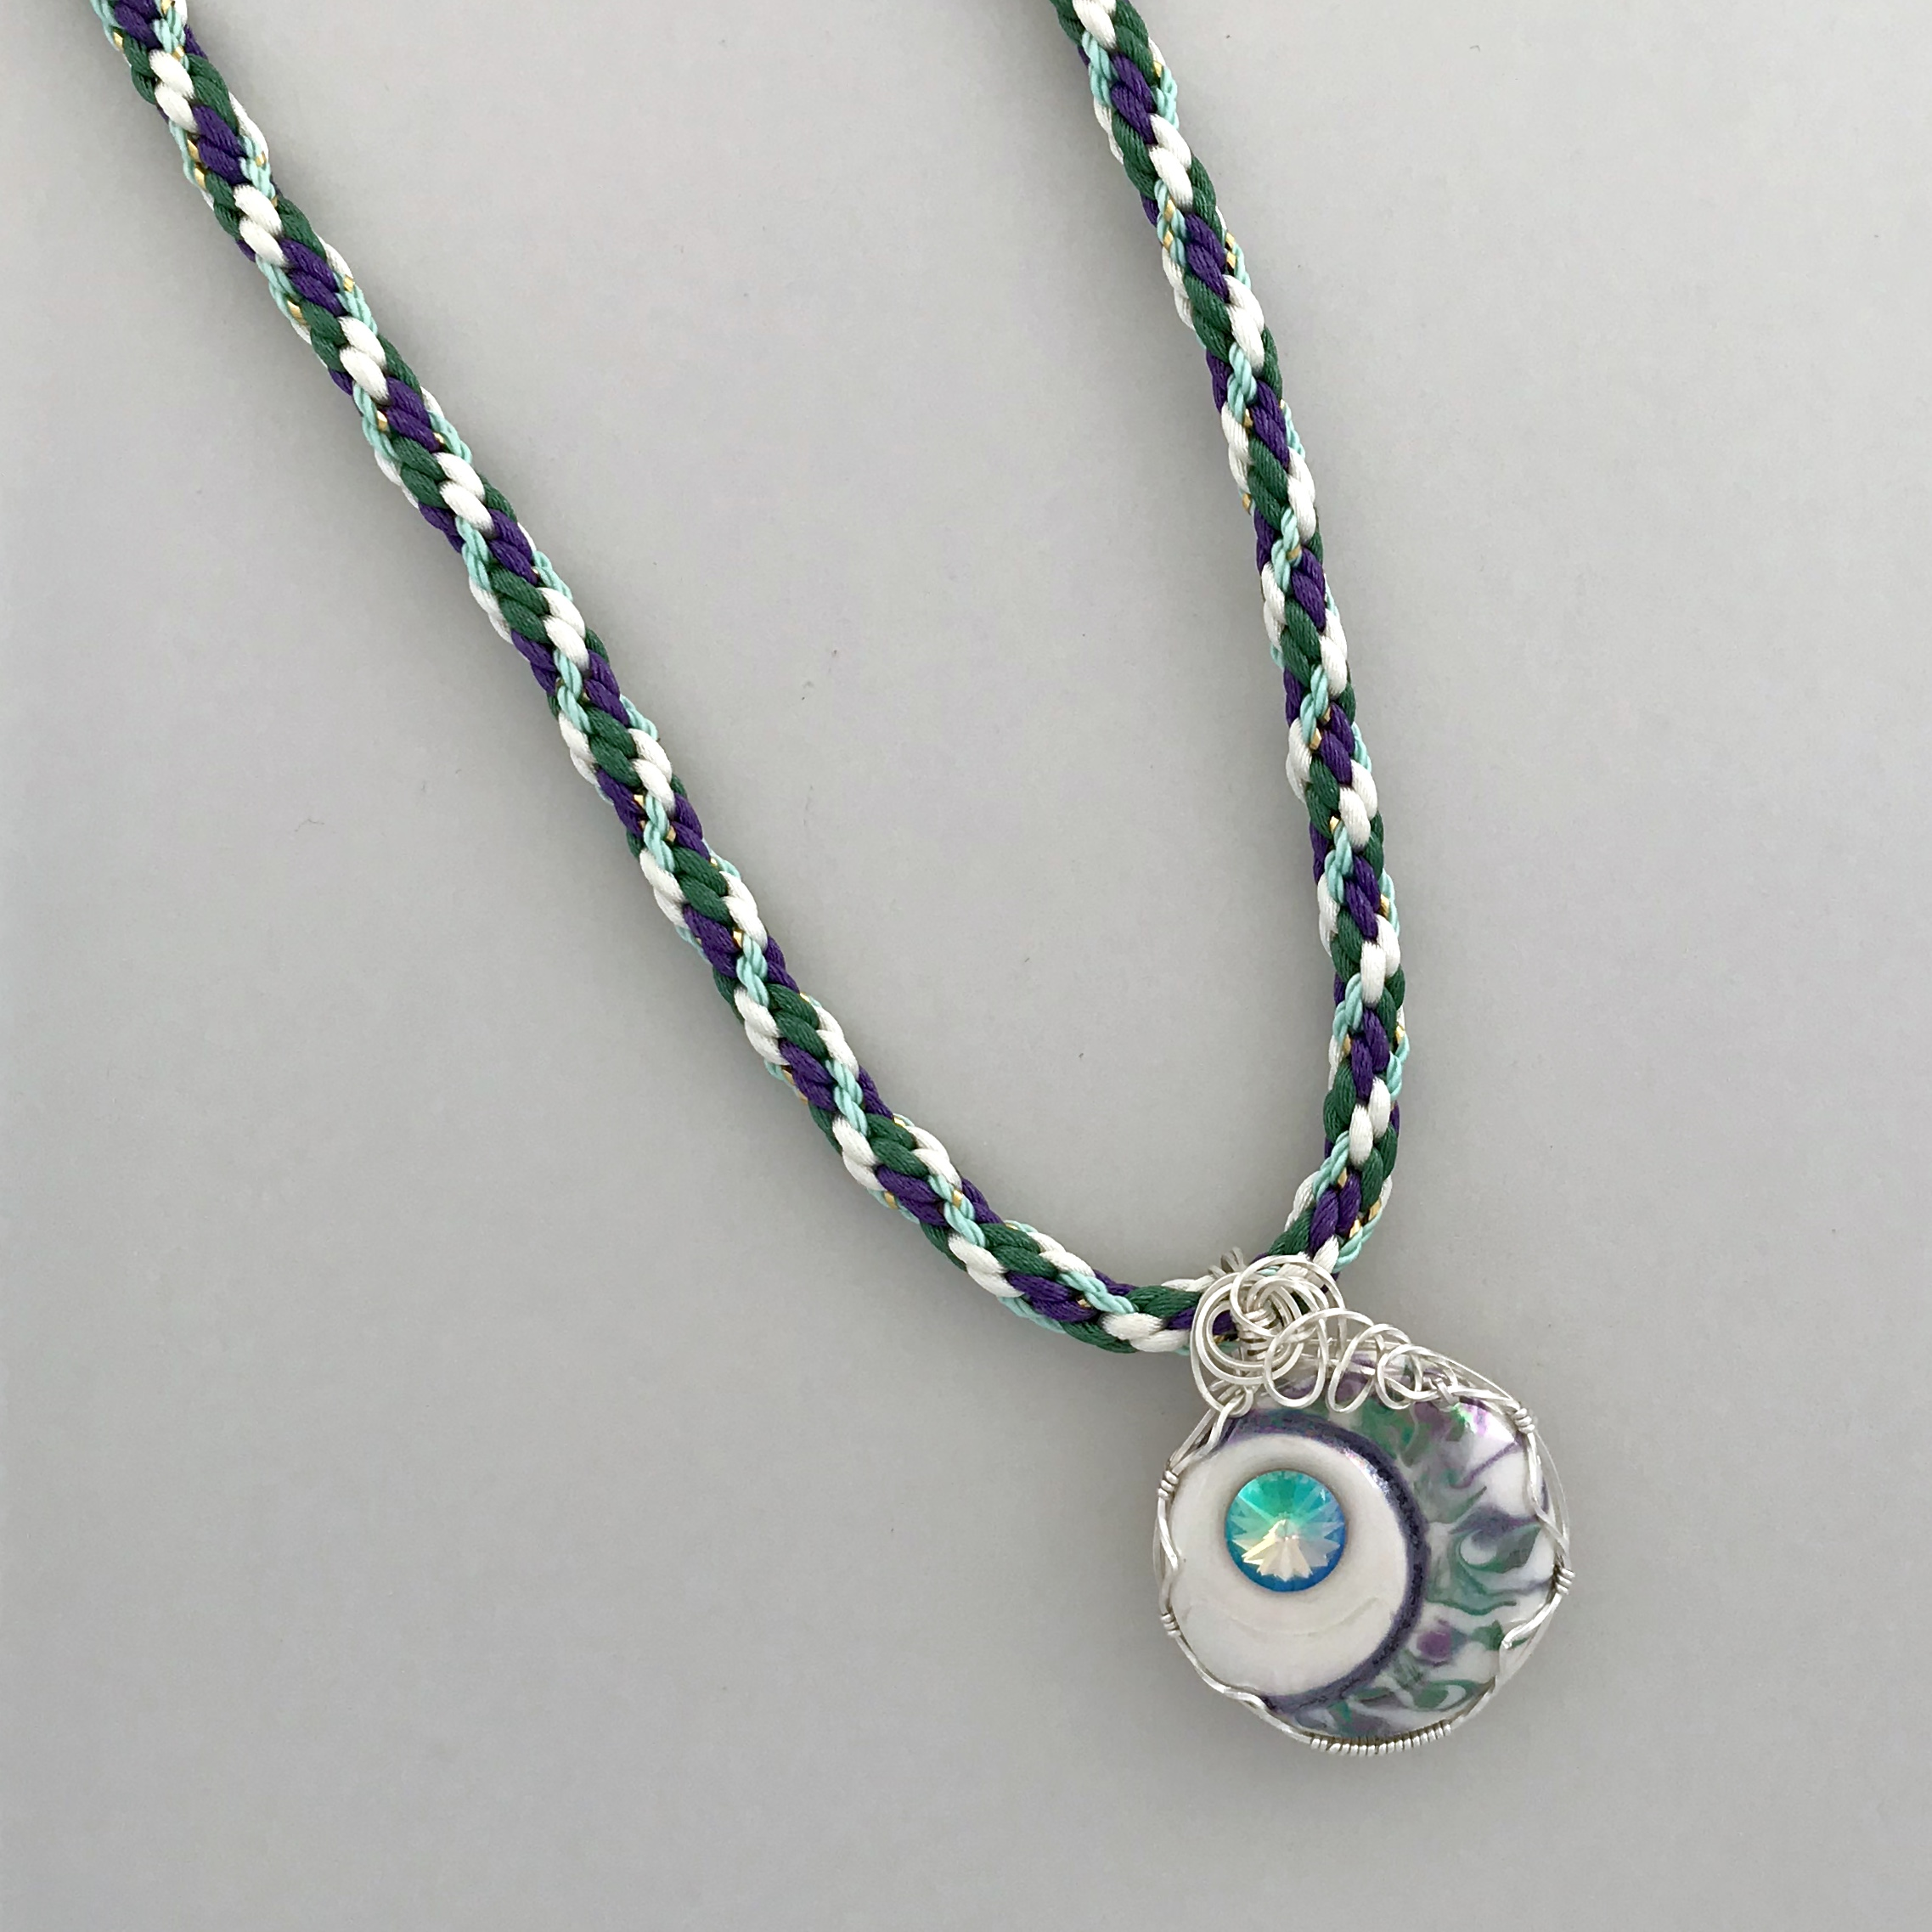 Kumihimo Braid with Wire Wrapped Porcelain Pendant #KBN12 | Indigo